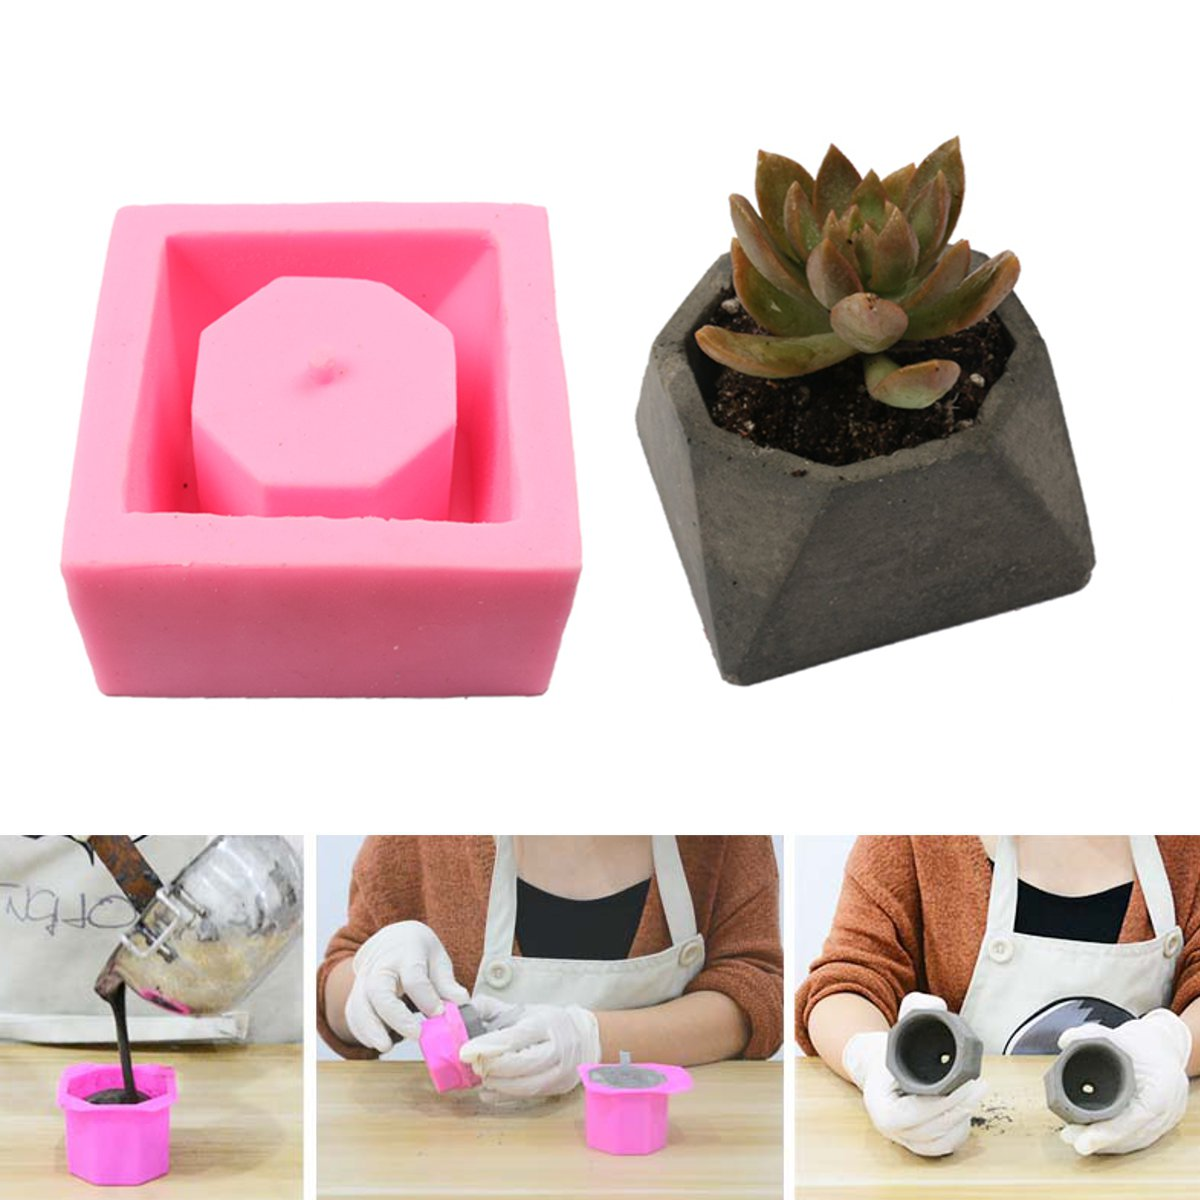 Handmade 3D Geometric Silicone Flower Pot Mold Concret Succulent Planter Mould Decor